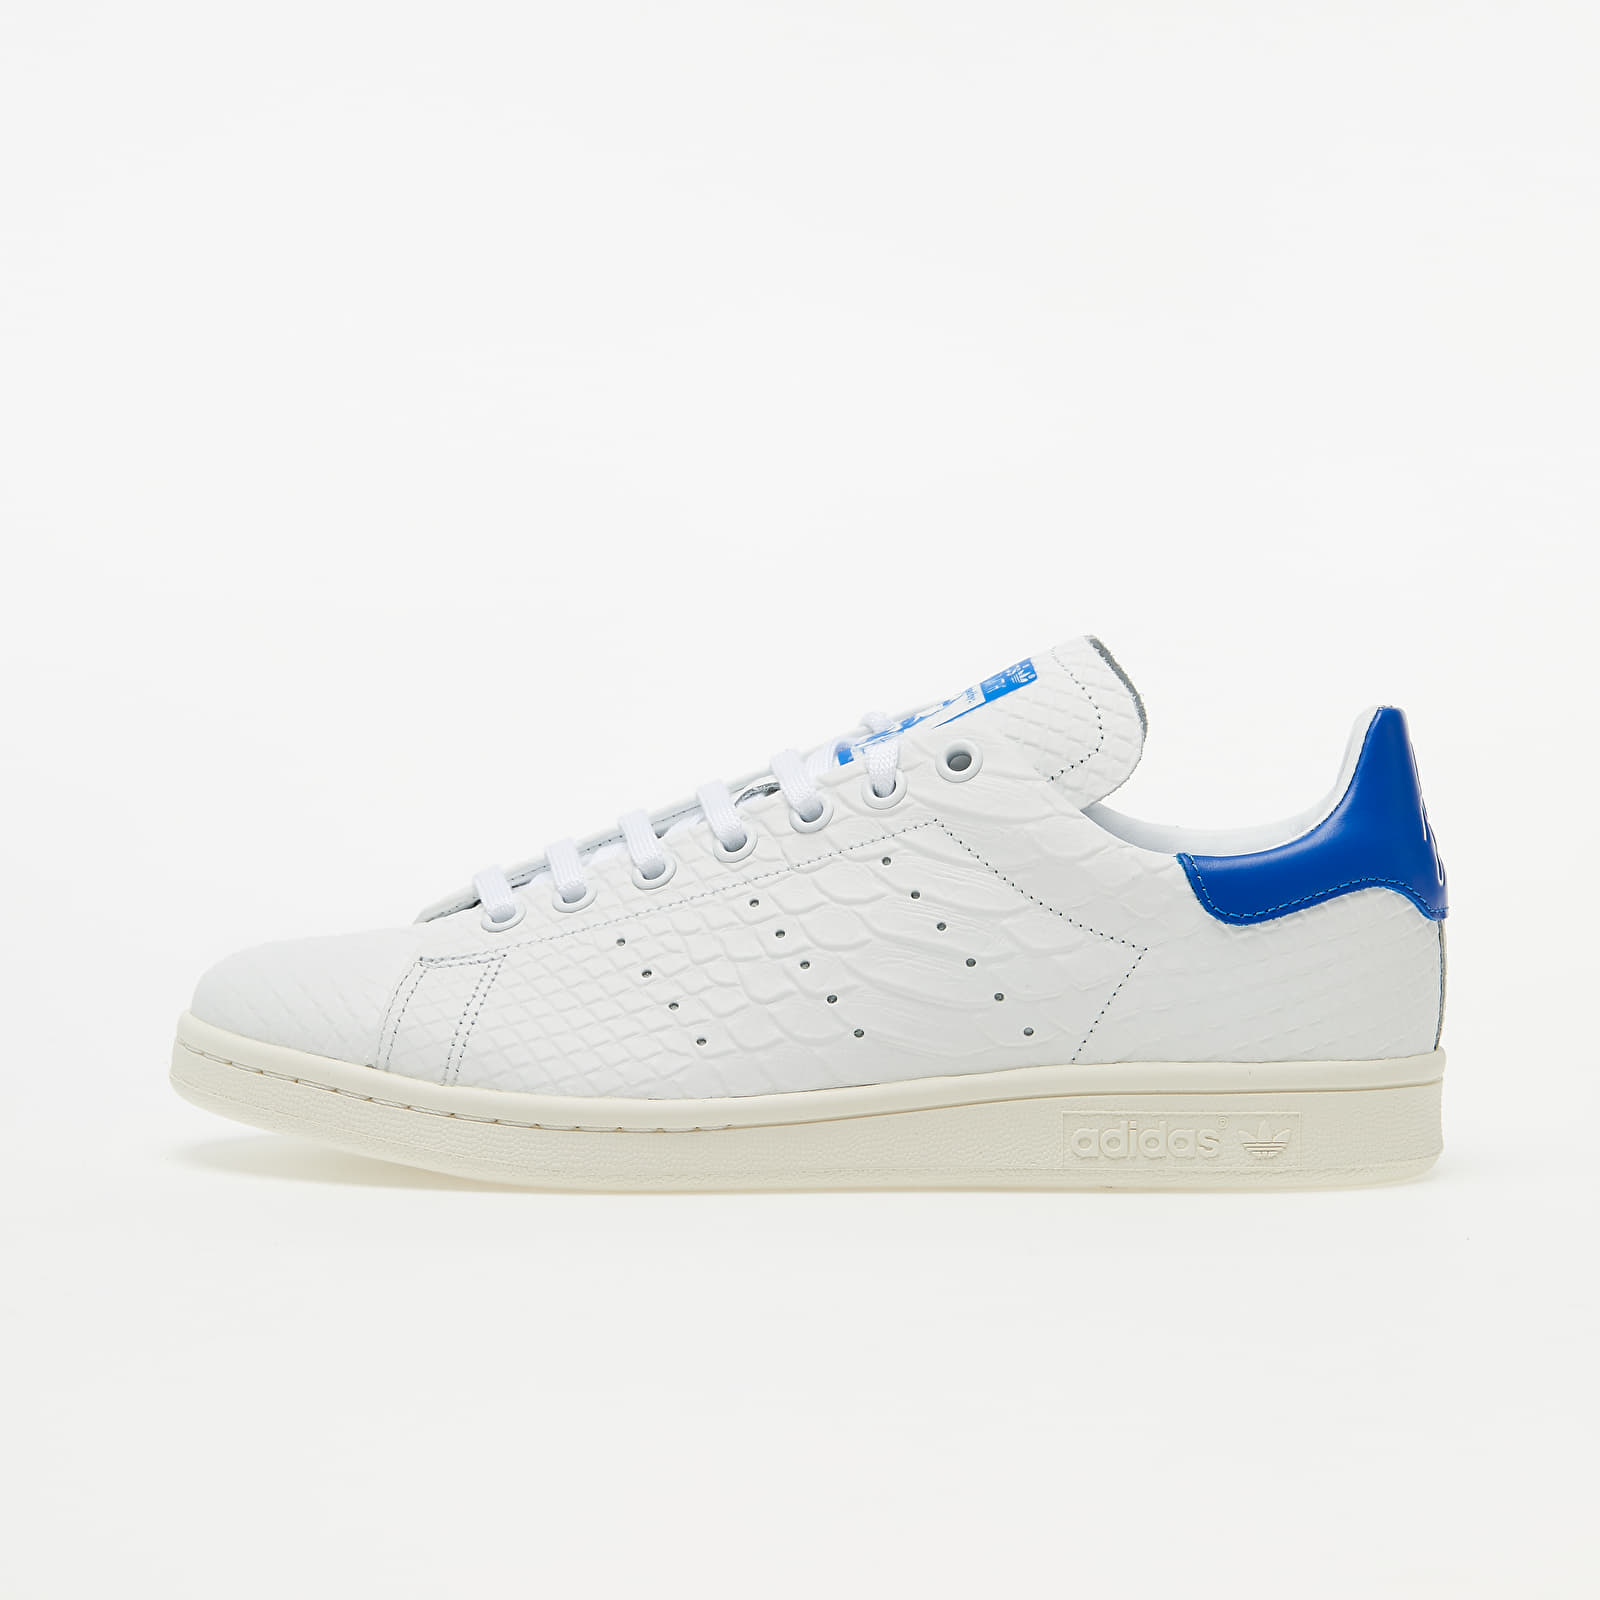 Chaussures et baskets homme adidas Stan Smith Recon Ftw White/ Crystal White/ Off White